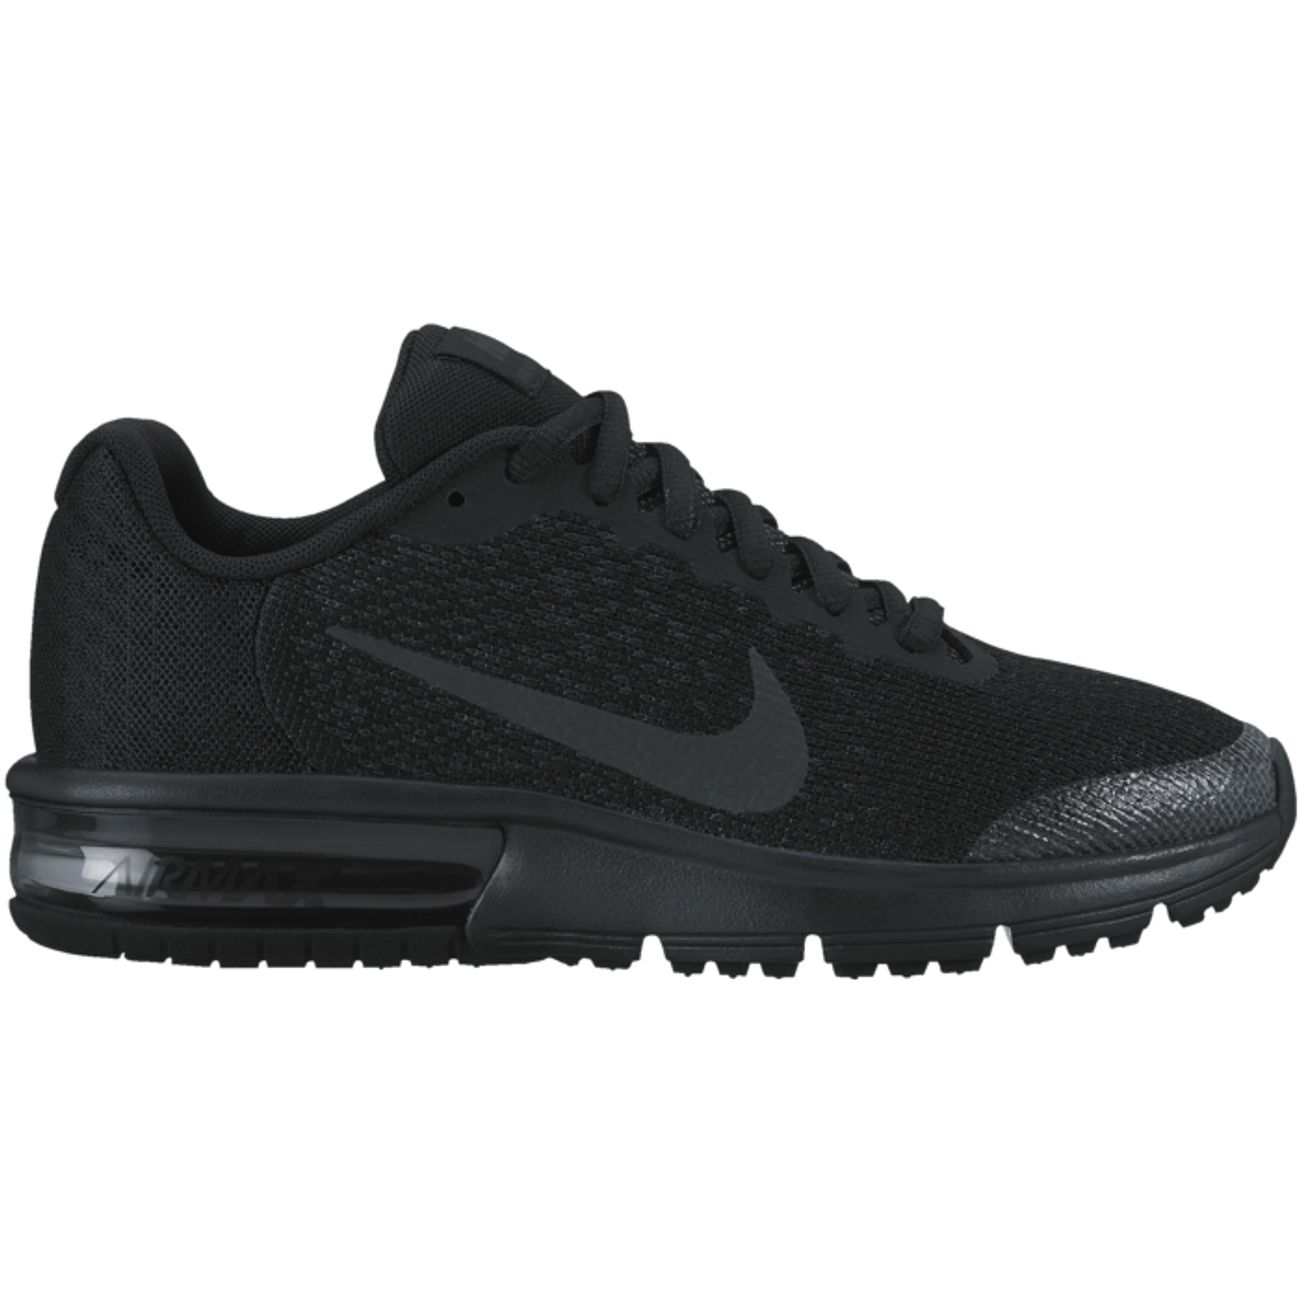 bad31768eec CHAUSSURES BASSES running enfant NIKE AIR MAX SEQUENT 2